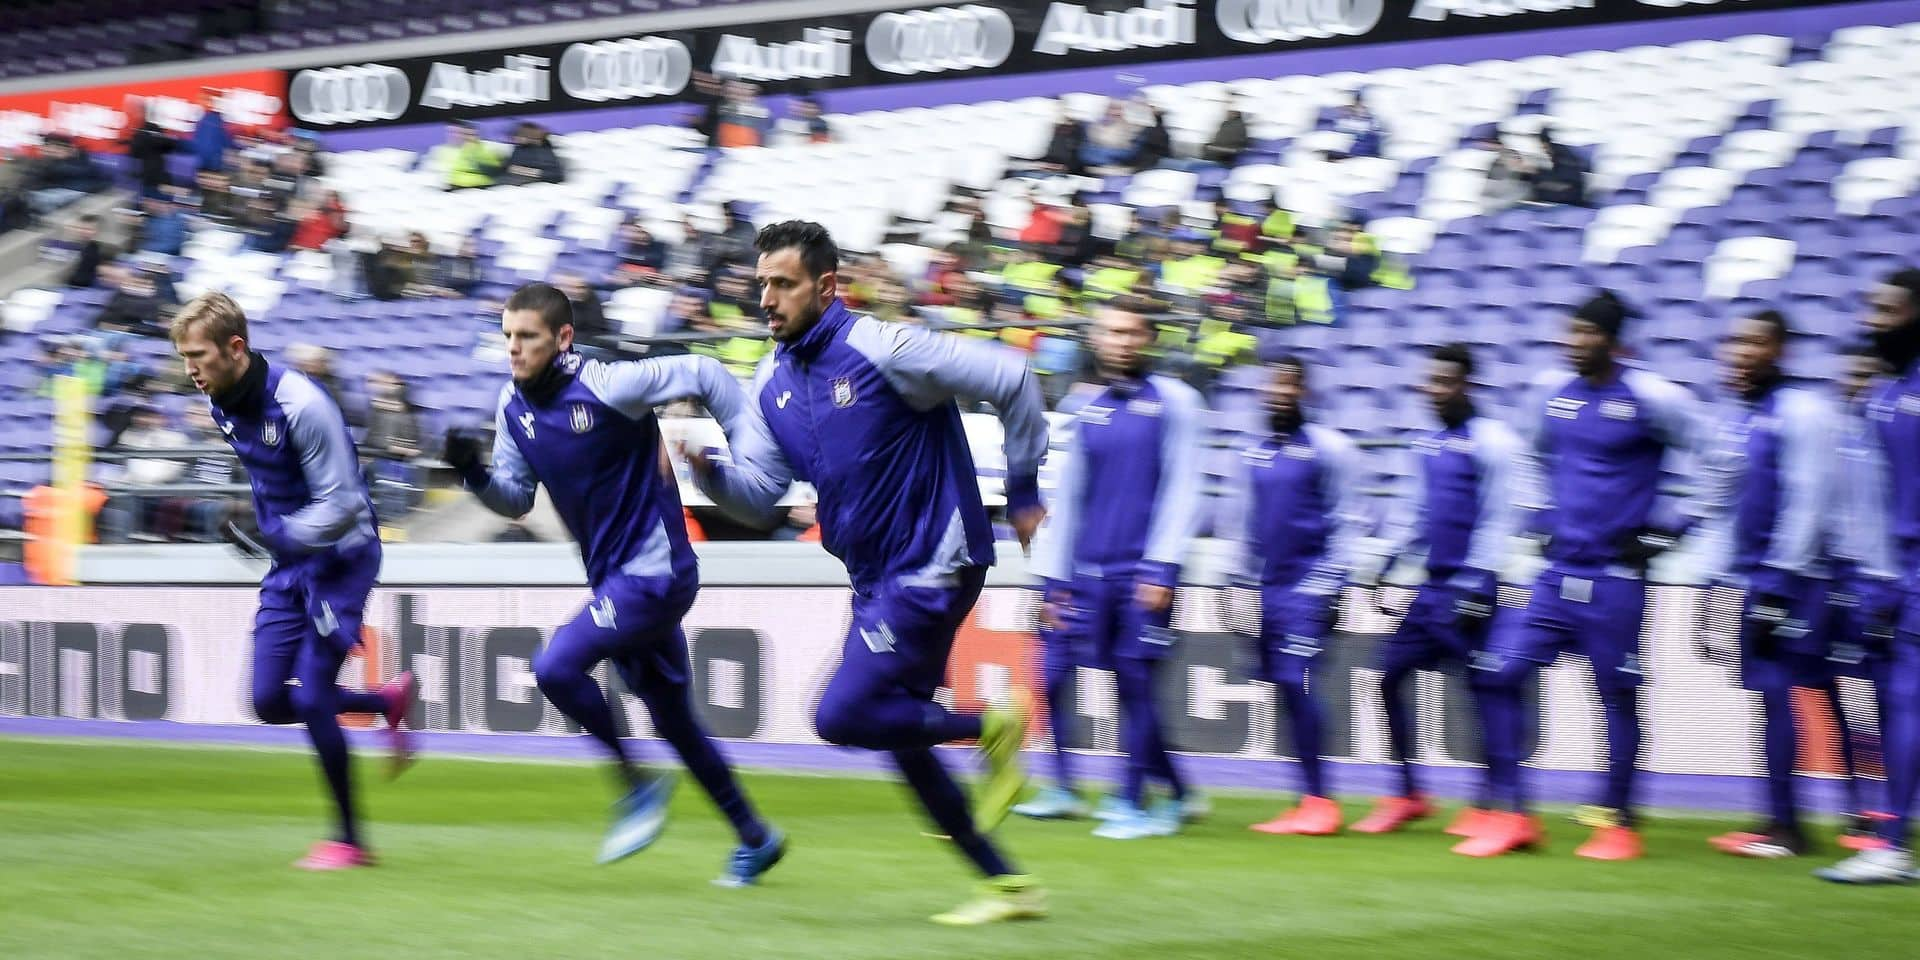 Rsc Anderlecht open Training 26-02-2020